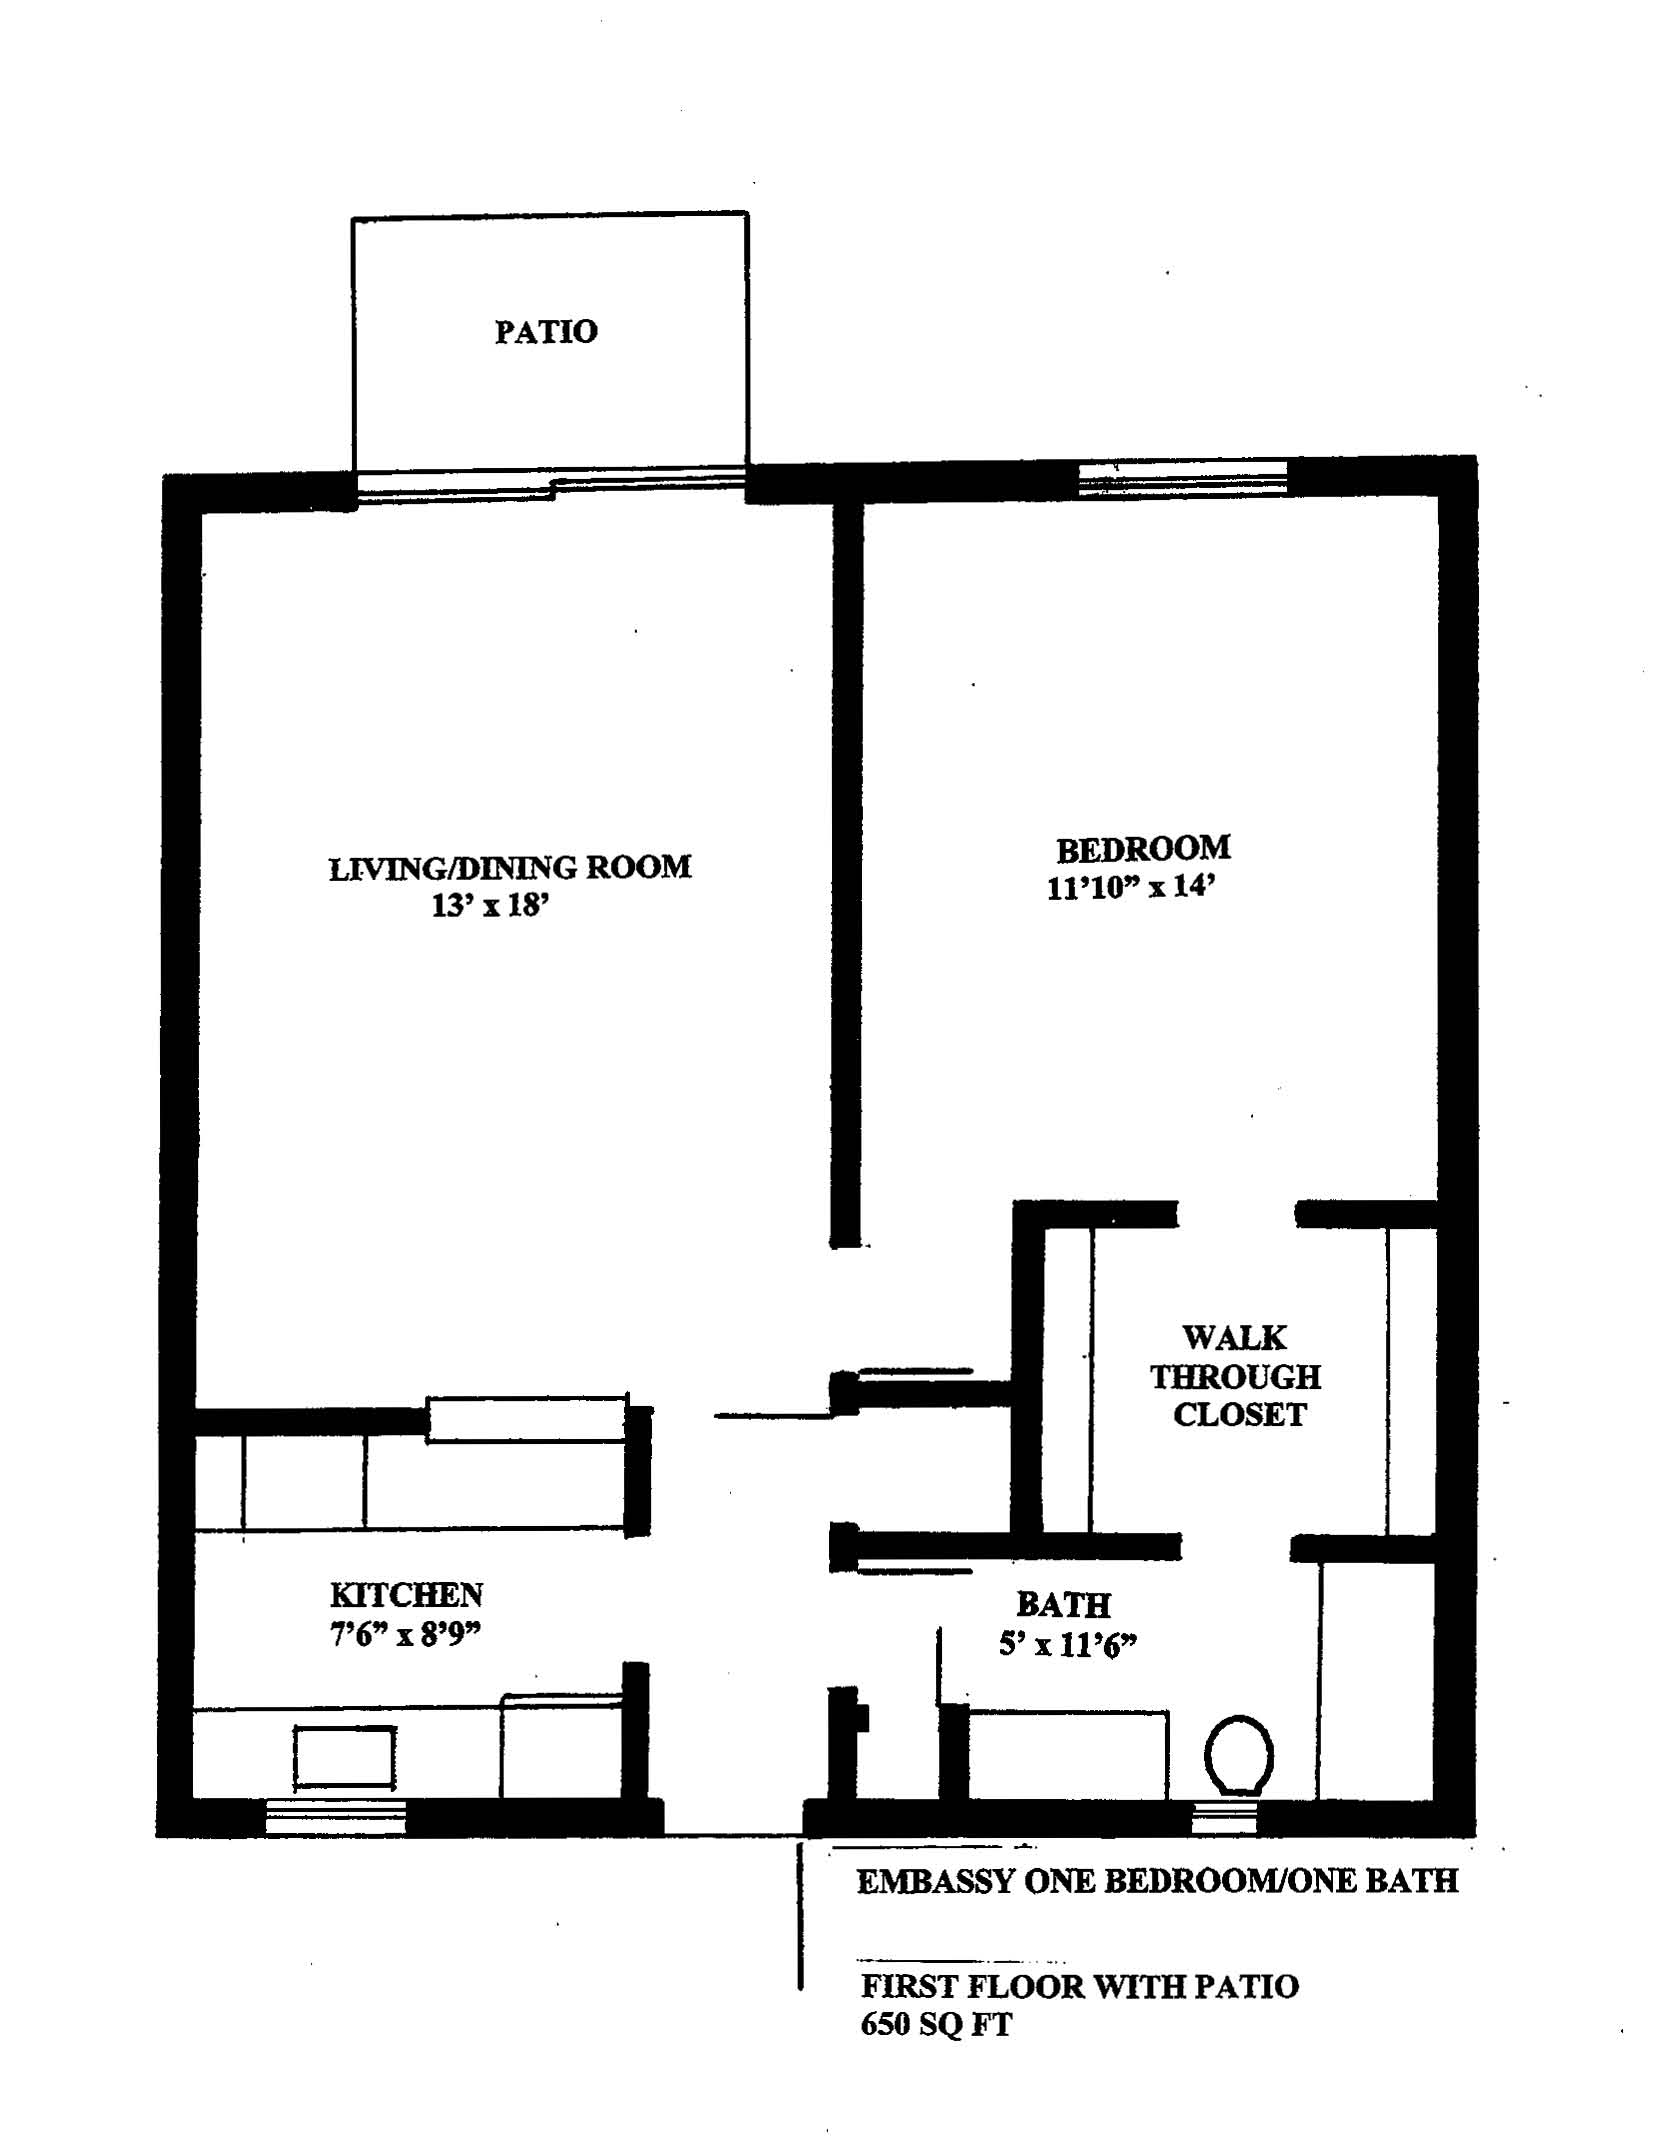 Floorplan - EMBASSY 1B - Available NOW Located at Embassy Apartments image